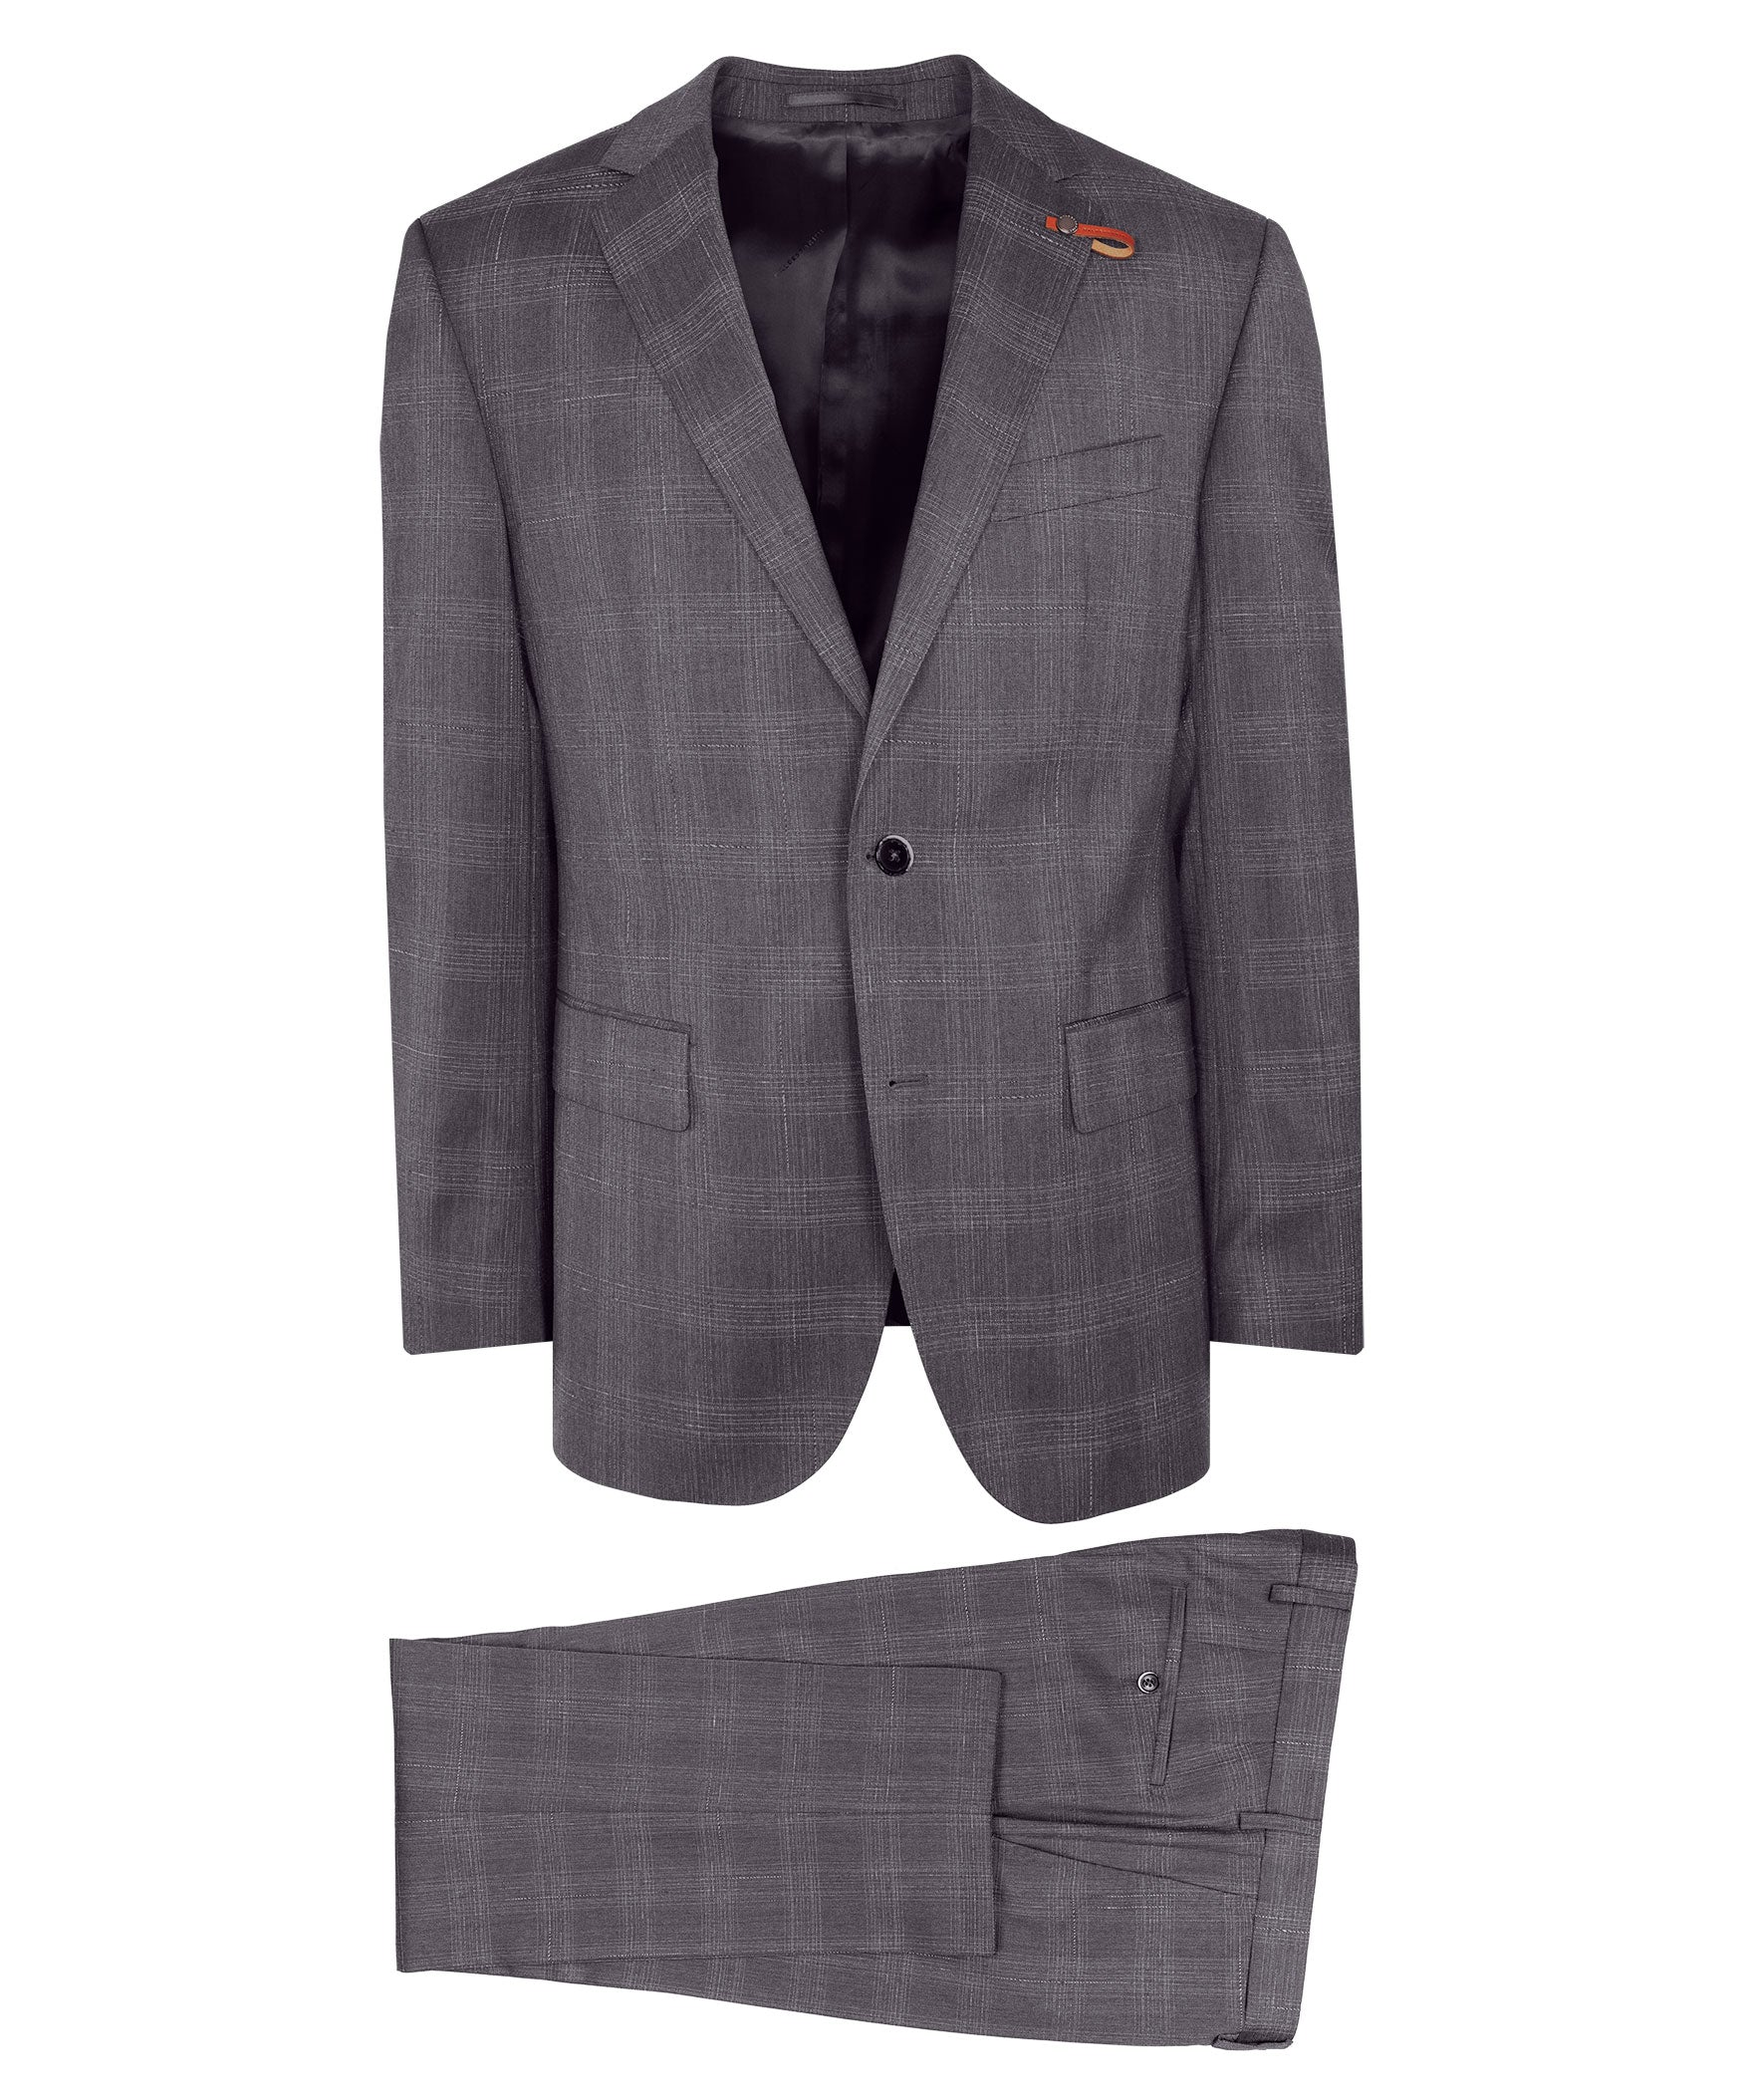 Rown Slate Grey Light Sketched Check Suit